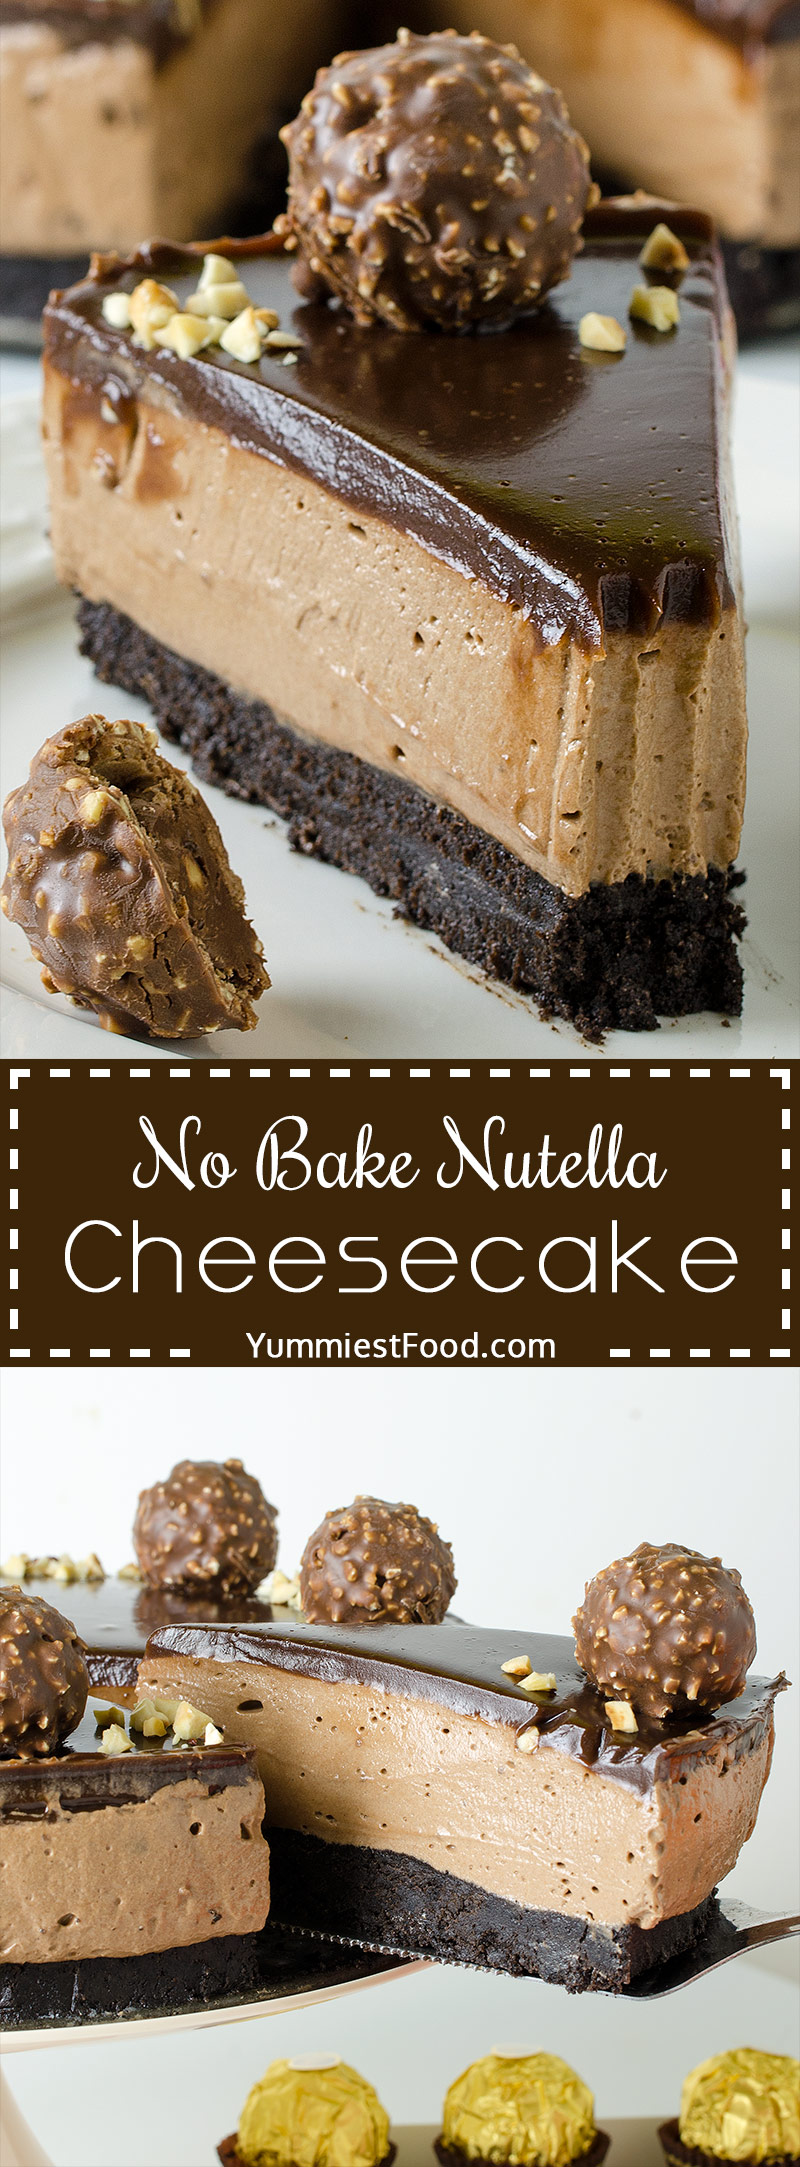 NO BAKE NUTELLA CHEESECAKE - Easy, rich and decadent, this cheesecake makes a beautiful, elegant and easy Ferrero Rocher Cheesecake Recipe for any special occasion